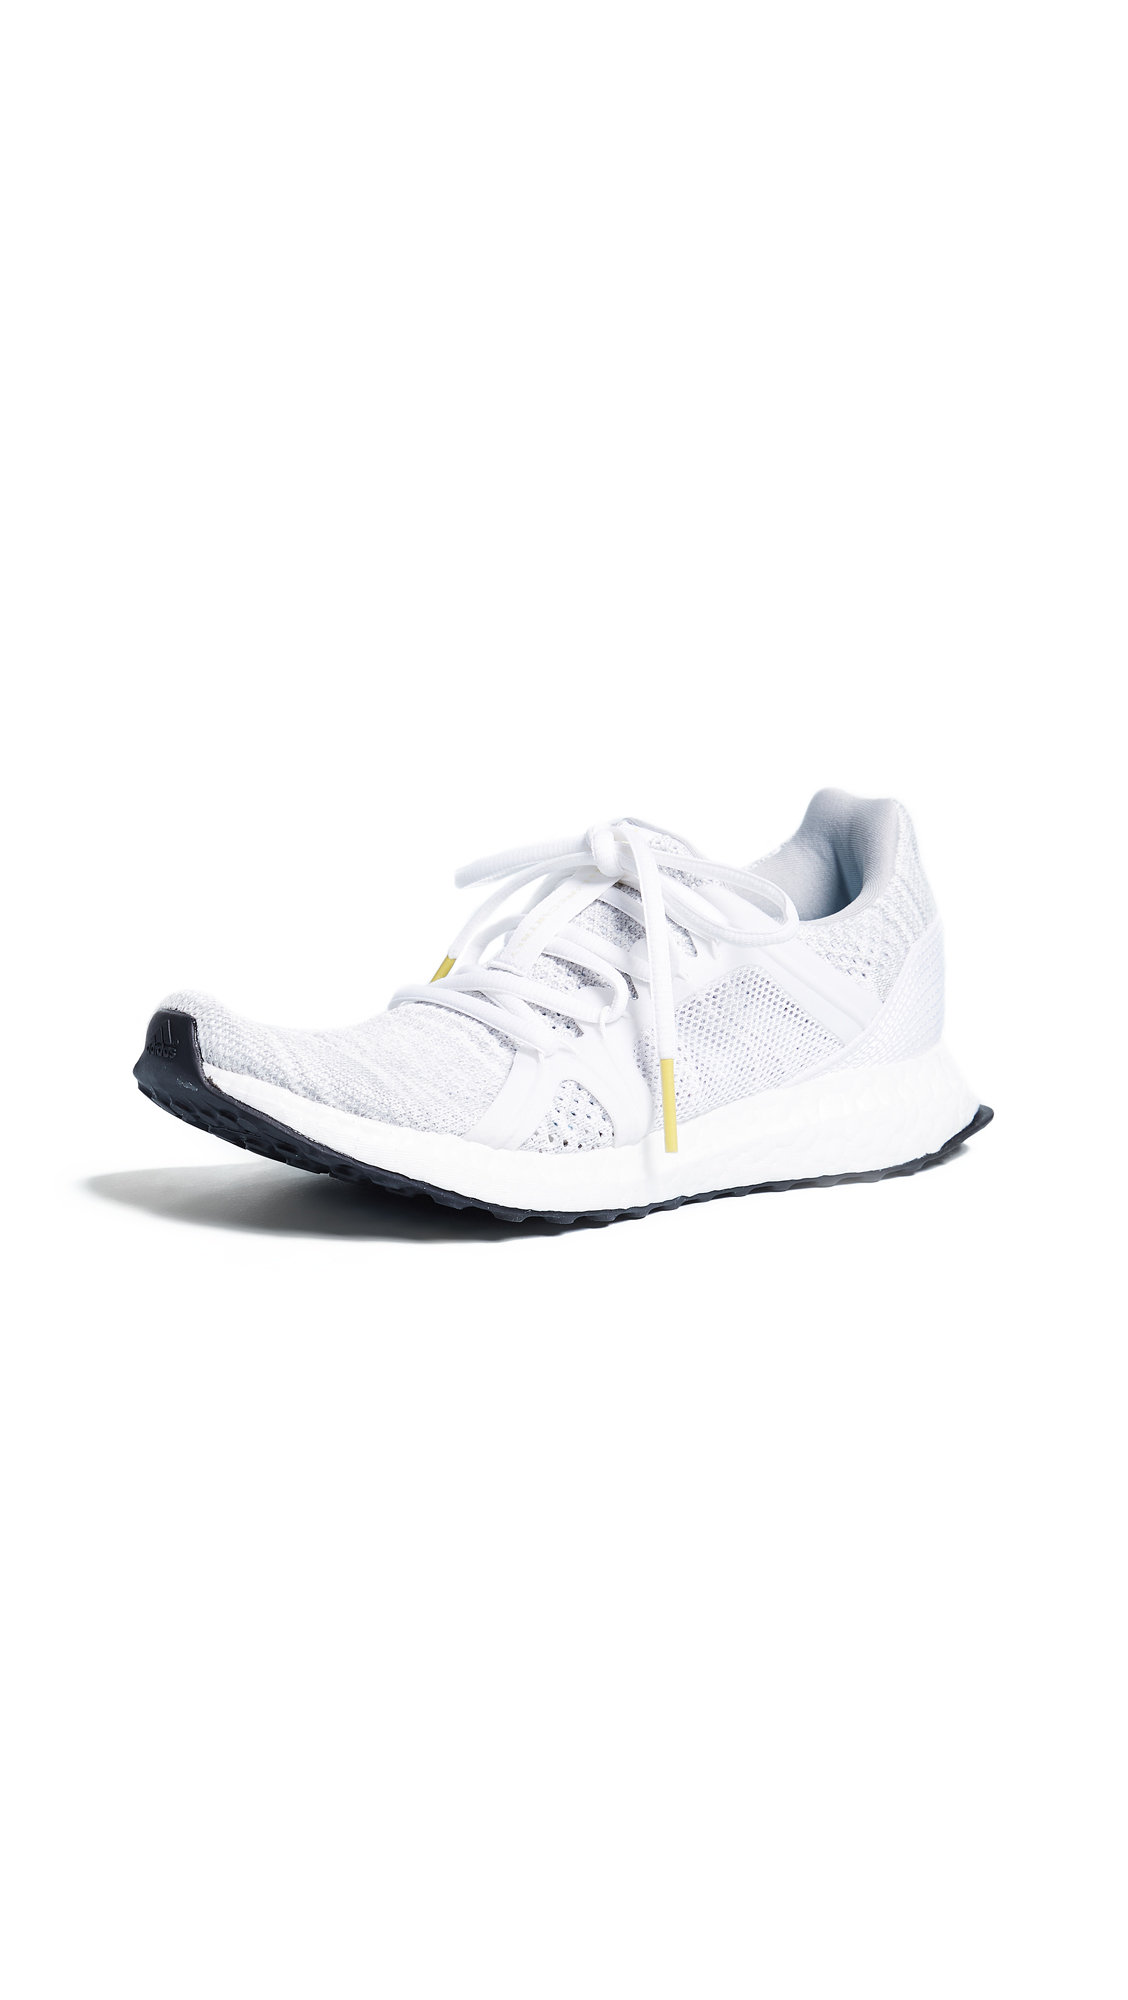 ADIDAS STELLA MCCARTNEY Ultraboost Parley US 10 Ultra Boost